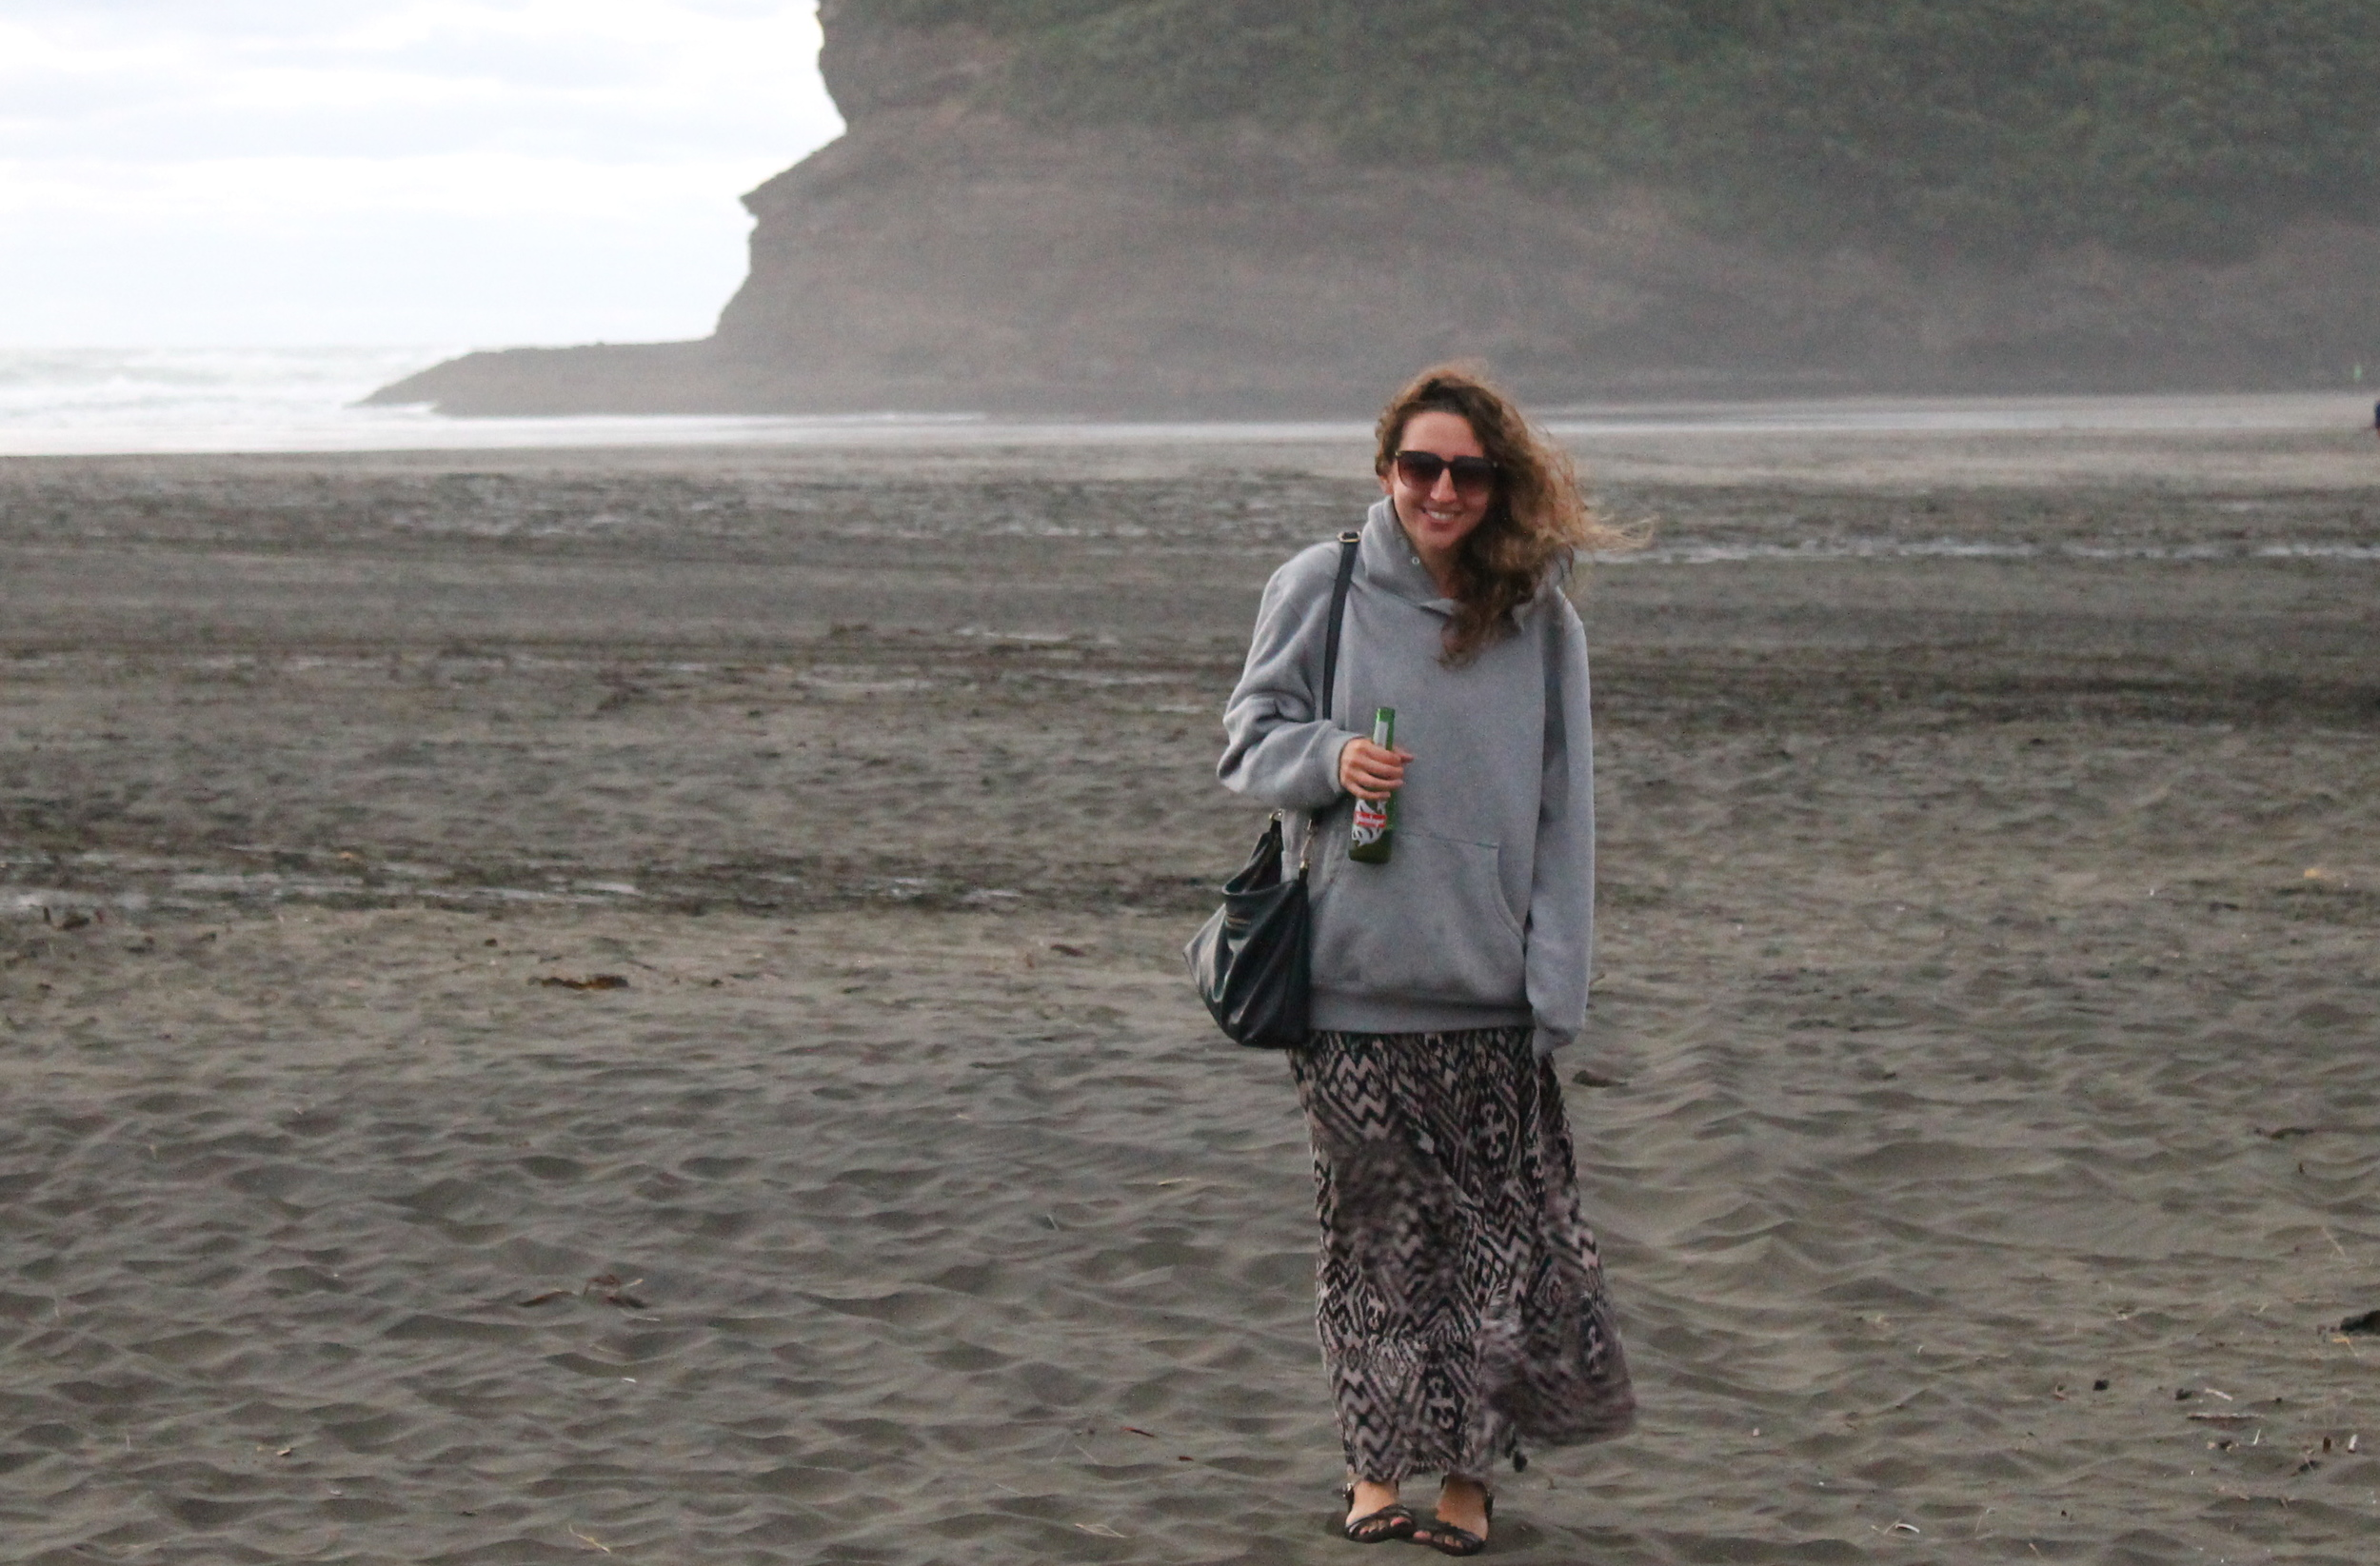 Windy day at Bethells Beach.